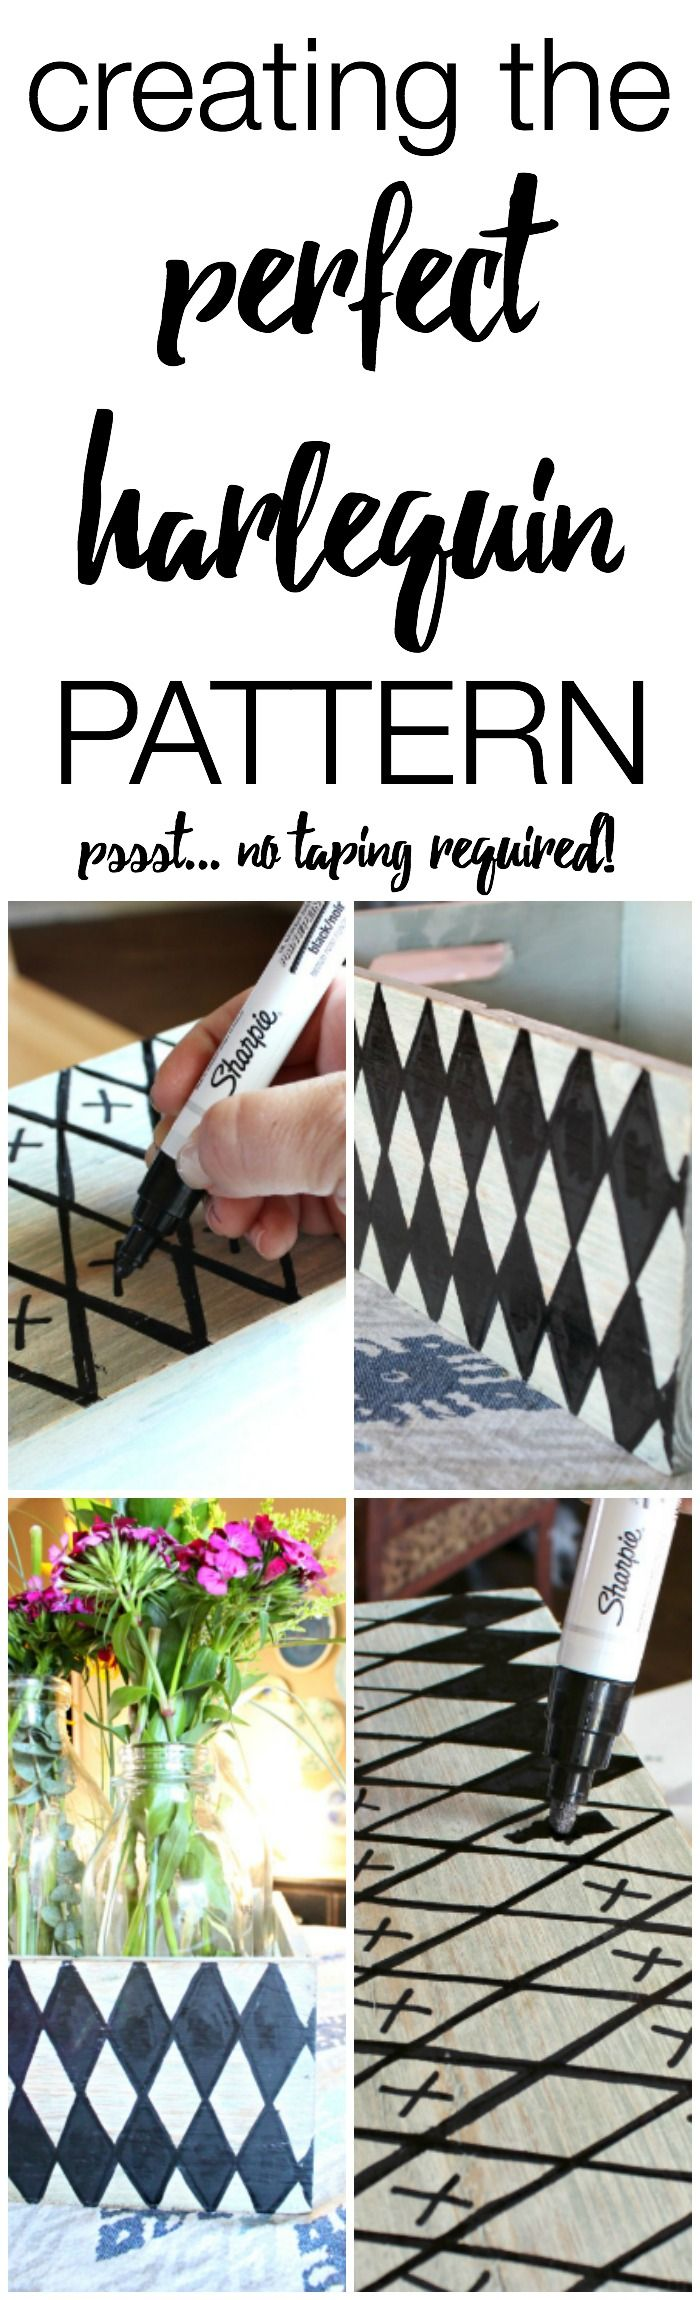 How to create the perfect Harlequiin pattern on painted furniture -- Sharpie Designs on Furniture - Refunk My Junk